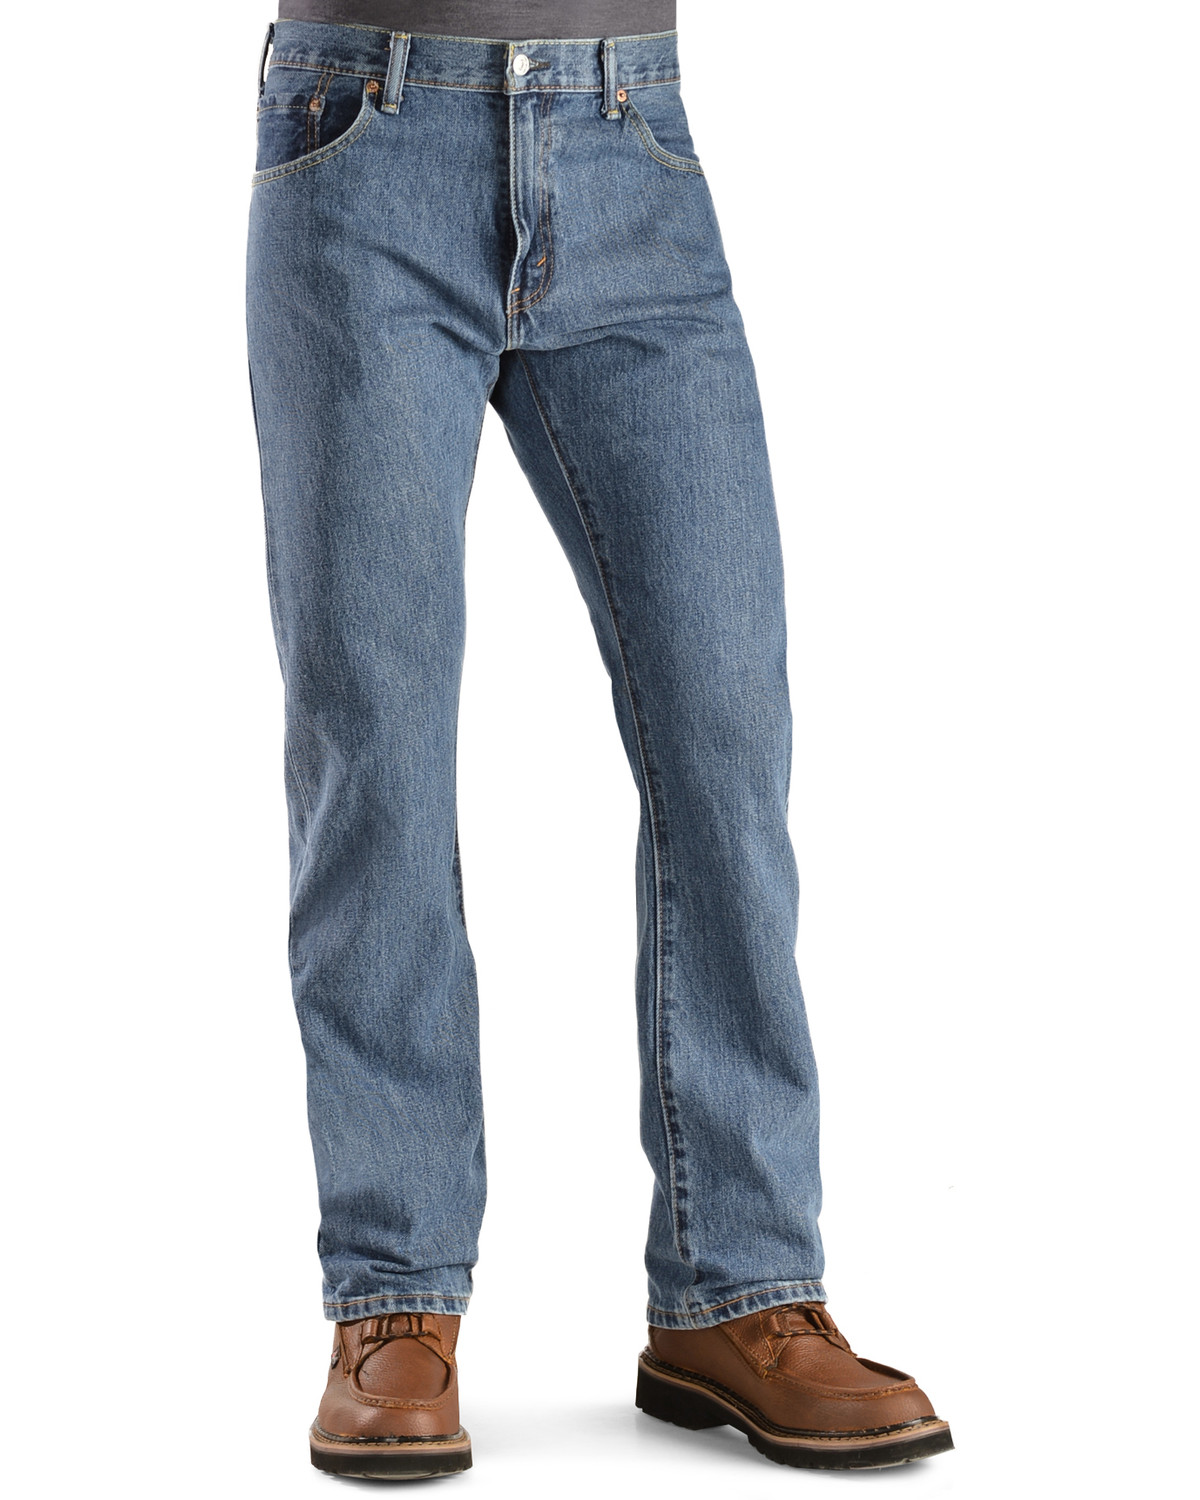 Levis on SALE! SaleRunner is the UK's biggest SALE site. Today we have 4 discounted products. Bargain Levis here!